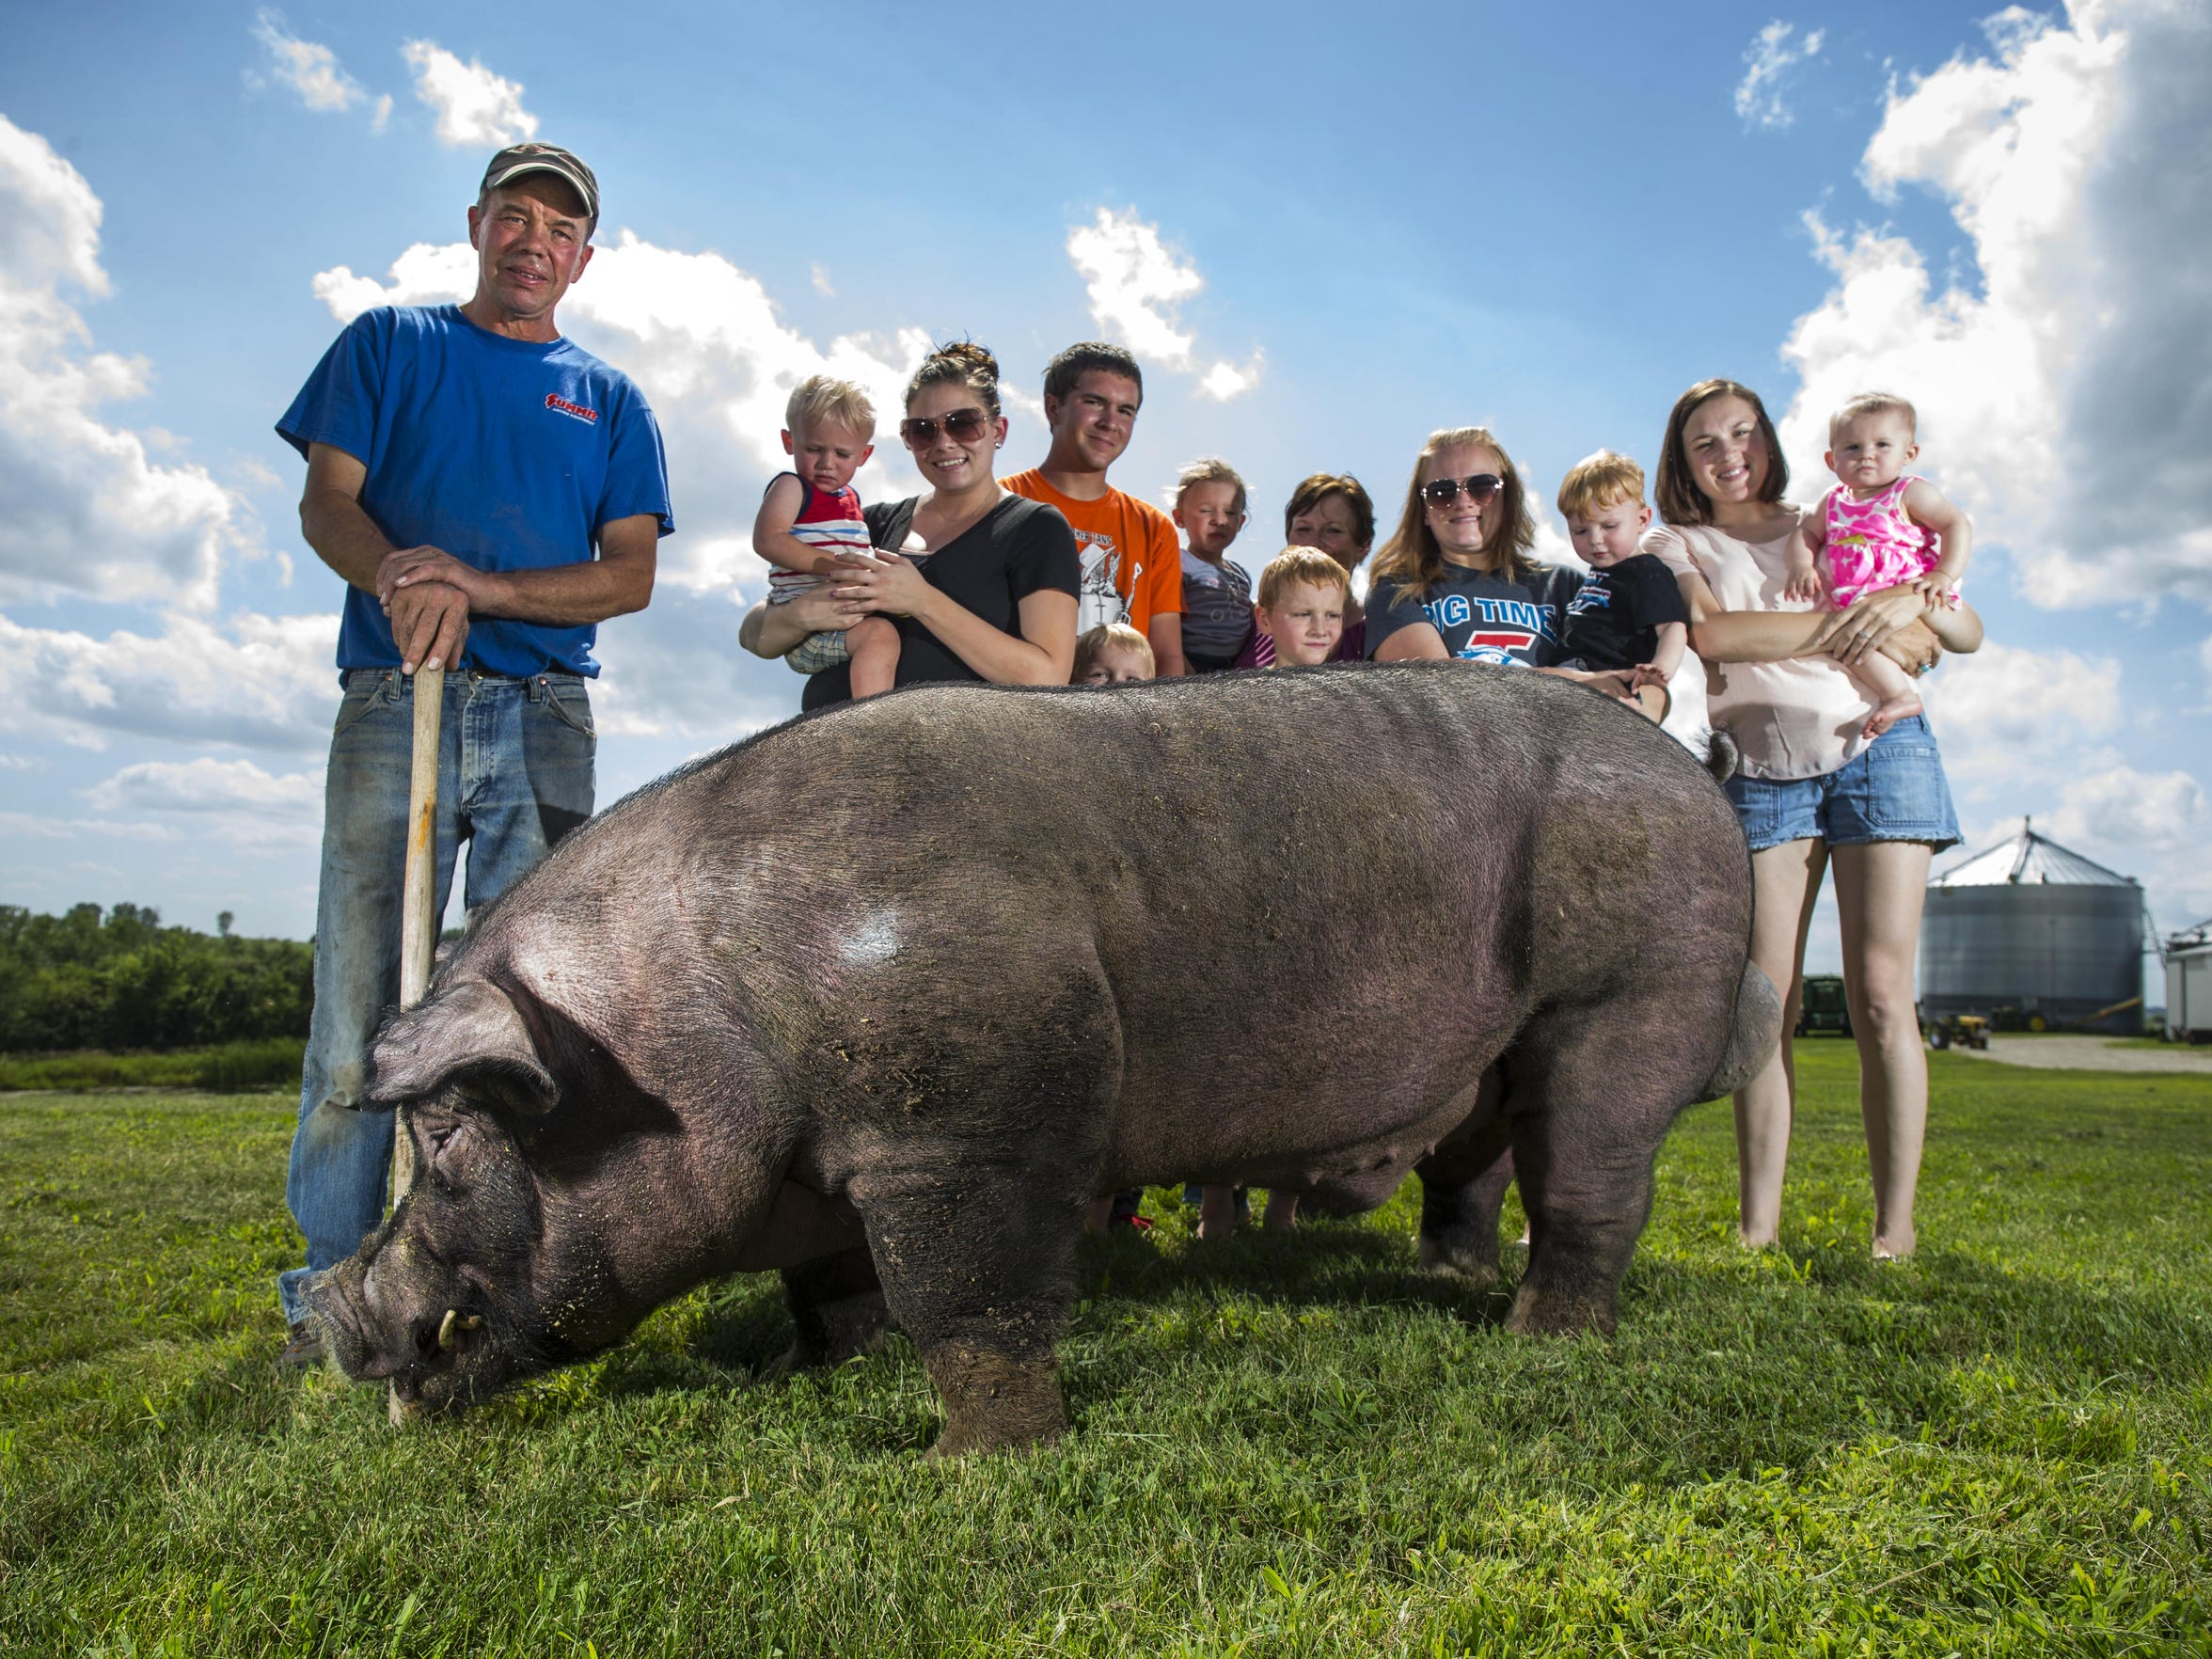 """Turbo Charge"", a boar owned by Steve and Dara Queck of rural Peru, poses with his family."